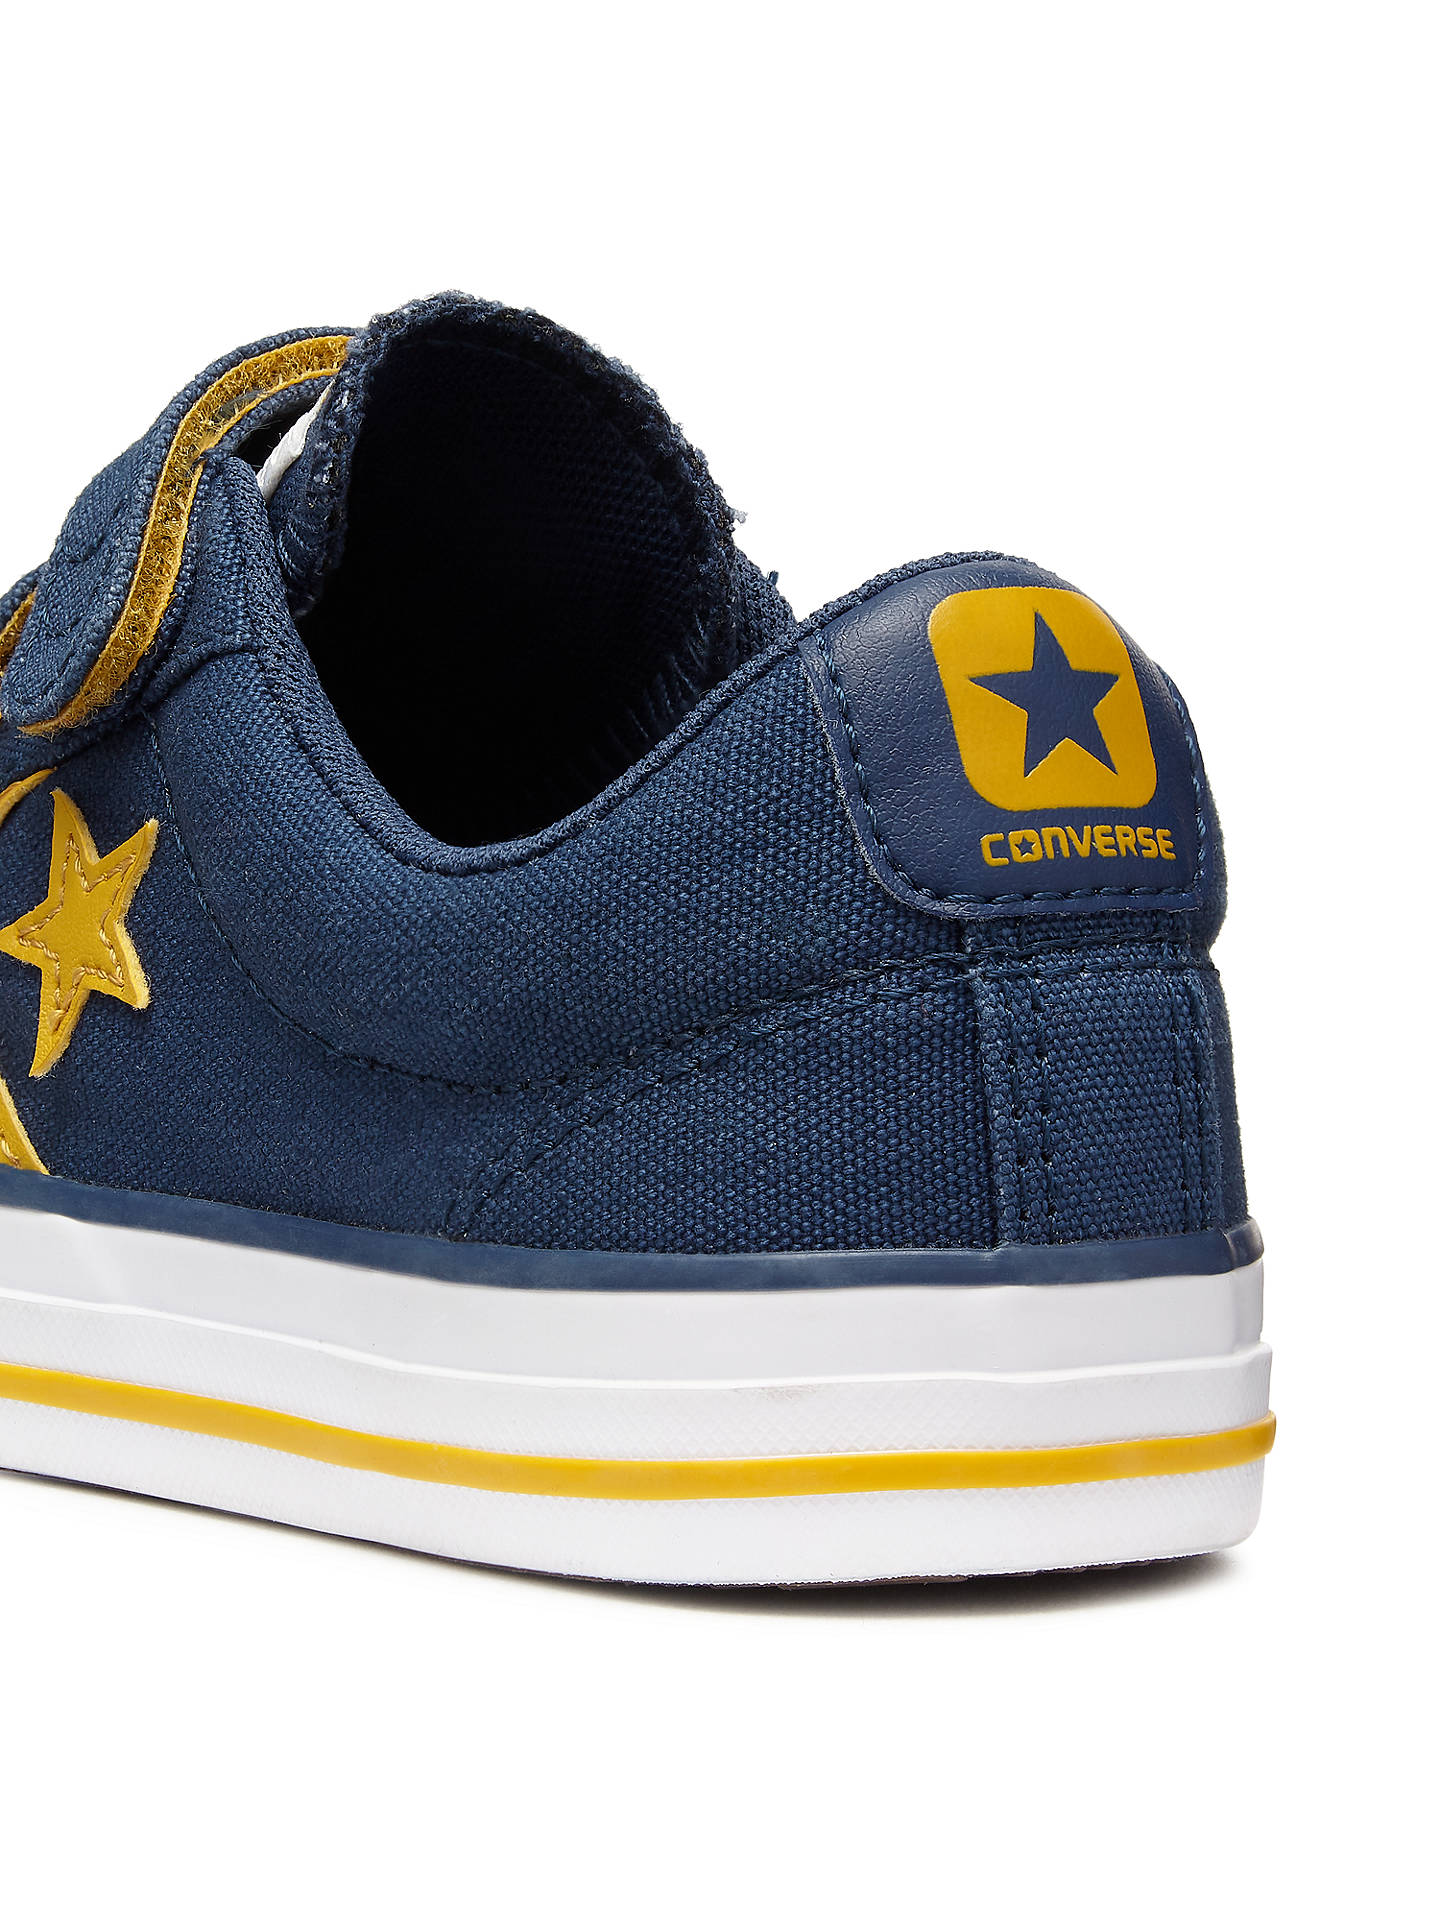 c343d1a2ce60 ... Buy Converse Star Player Riptape Trainers